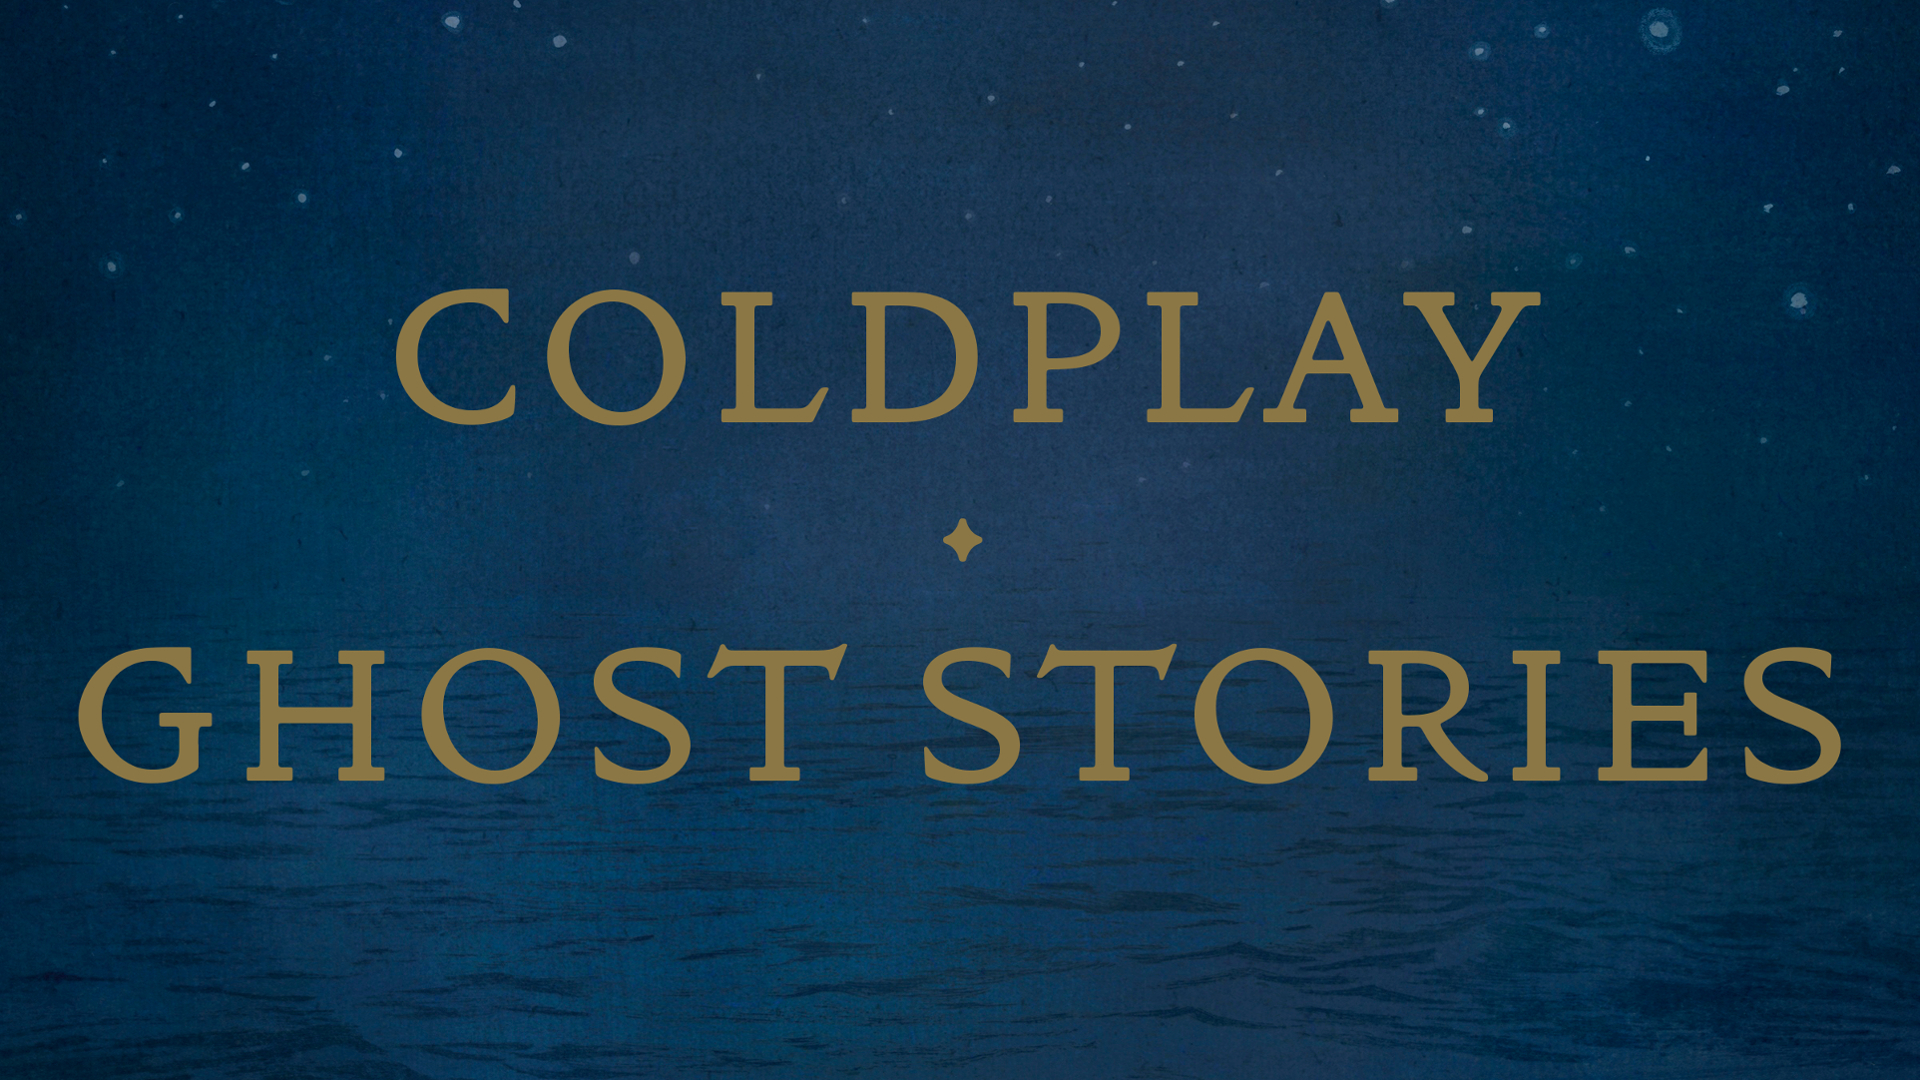 Coldplay Ghost Stories Album Copd Blog L